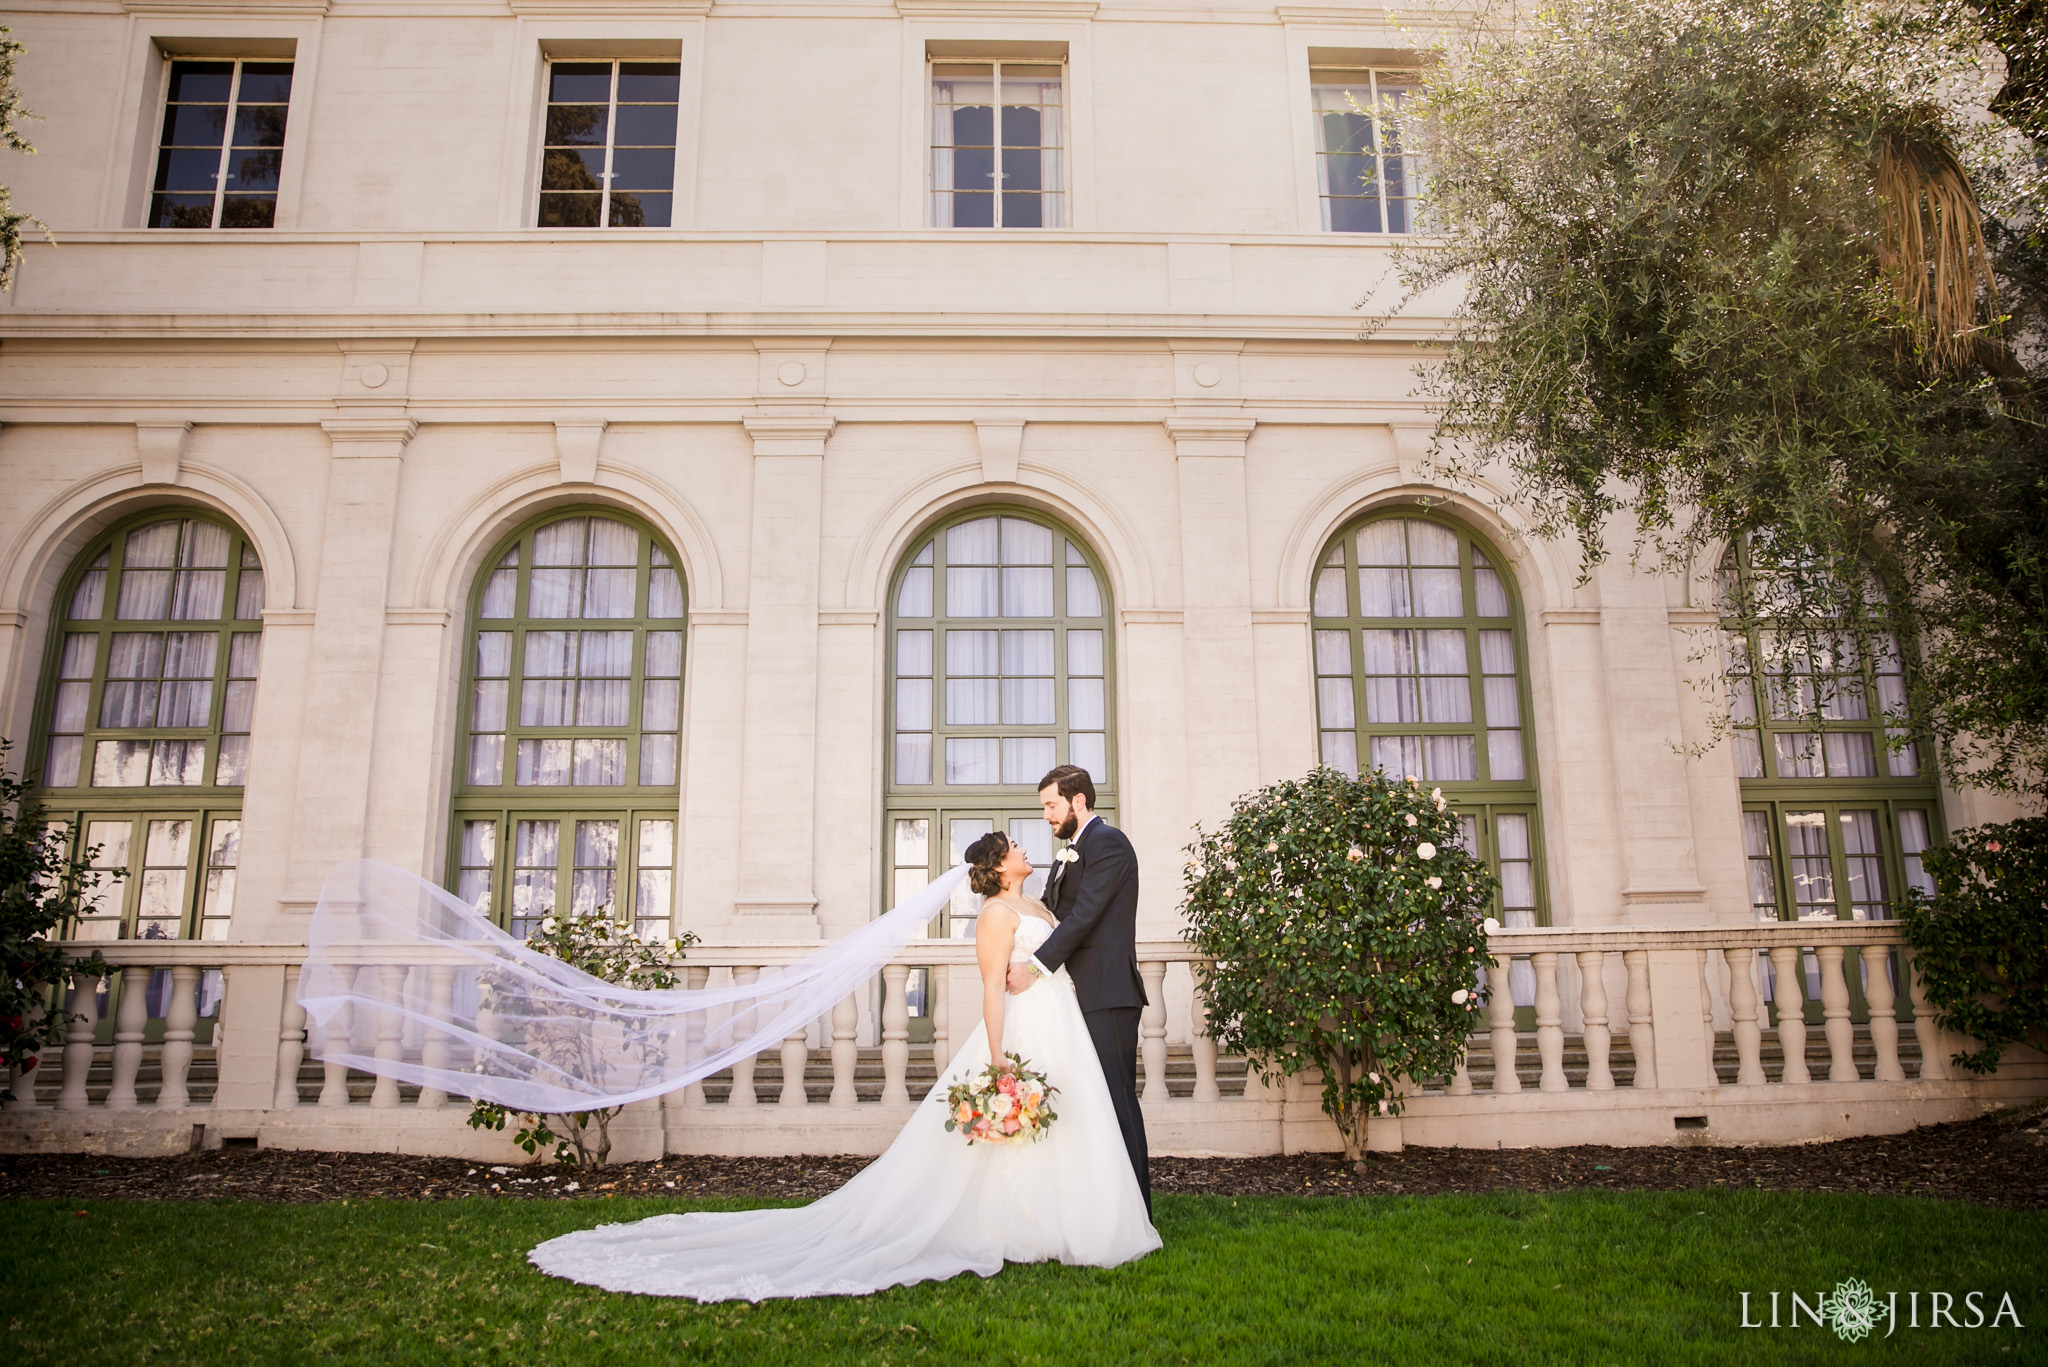 69 The Ebell Los Angeles Wedding Photography